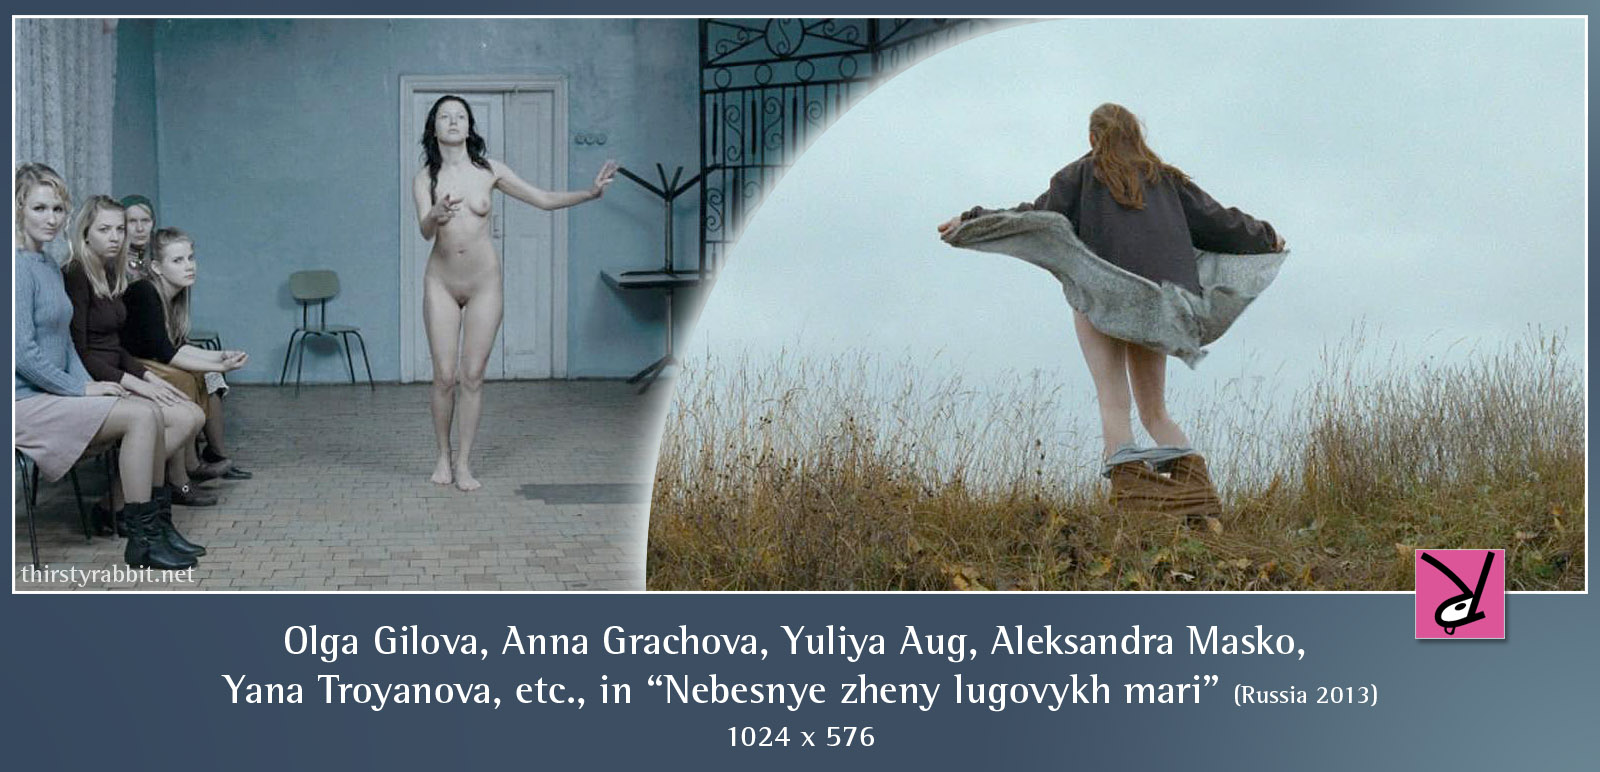 Olga Gilova, Anna Grachova, Yuliya Aug, Aleksandra Masko, Yana Troyanova, and others in Nebesnye zheny lugovykh mari aka Celestial Wives of the Meadow Mari.